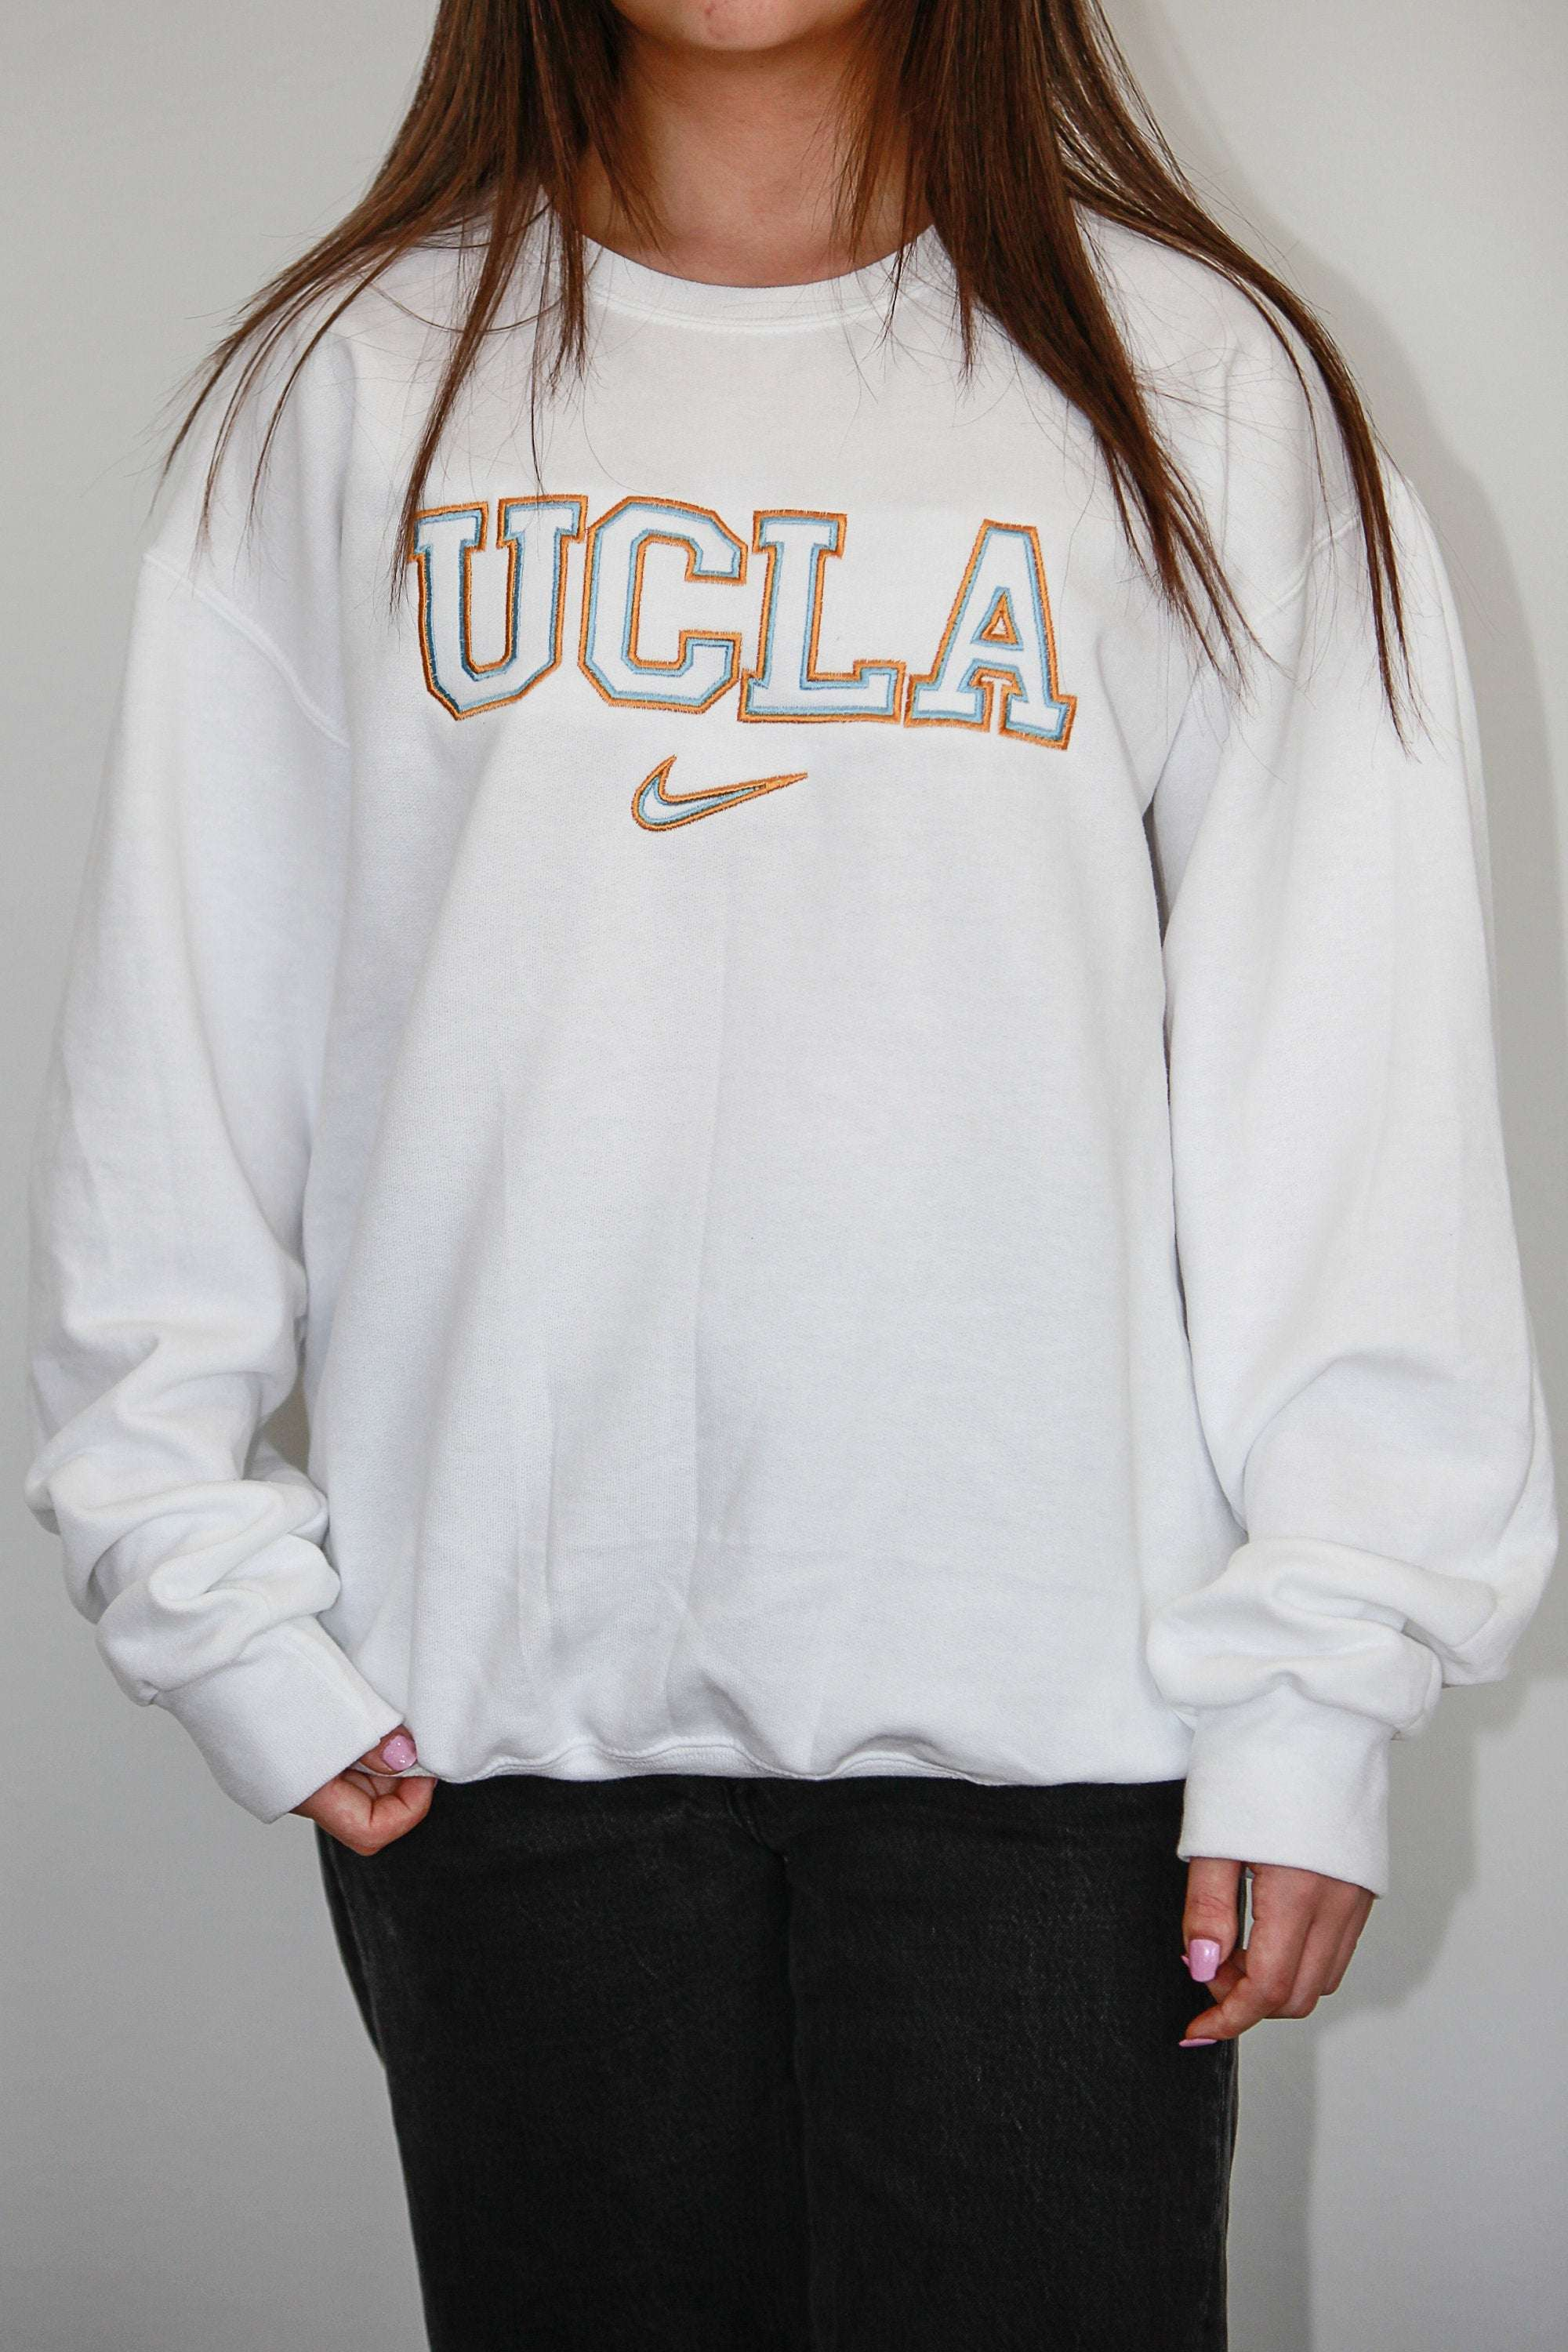 Ucla Embroidered Embroidery